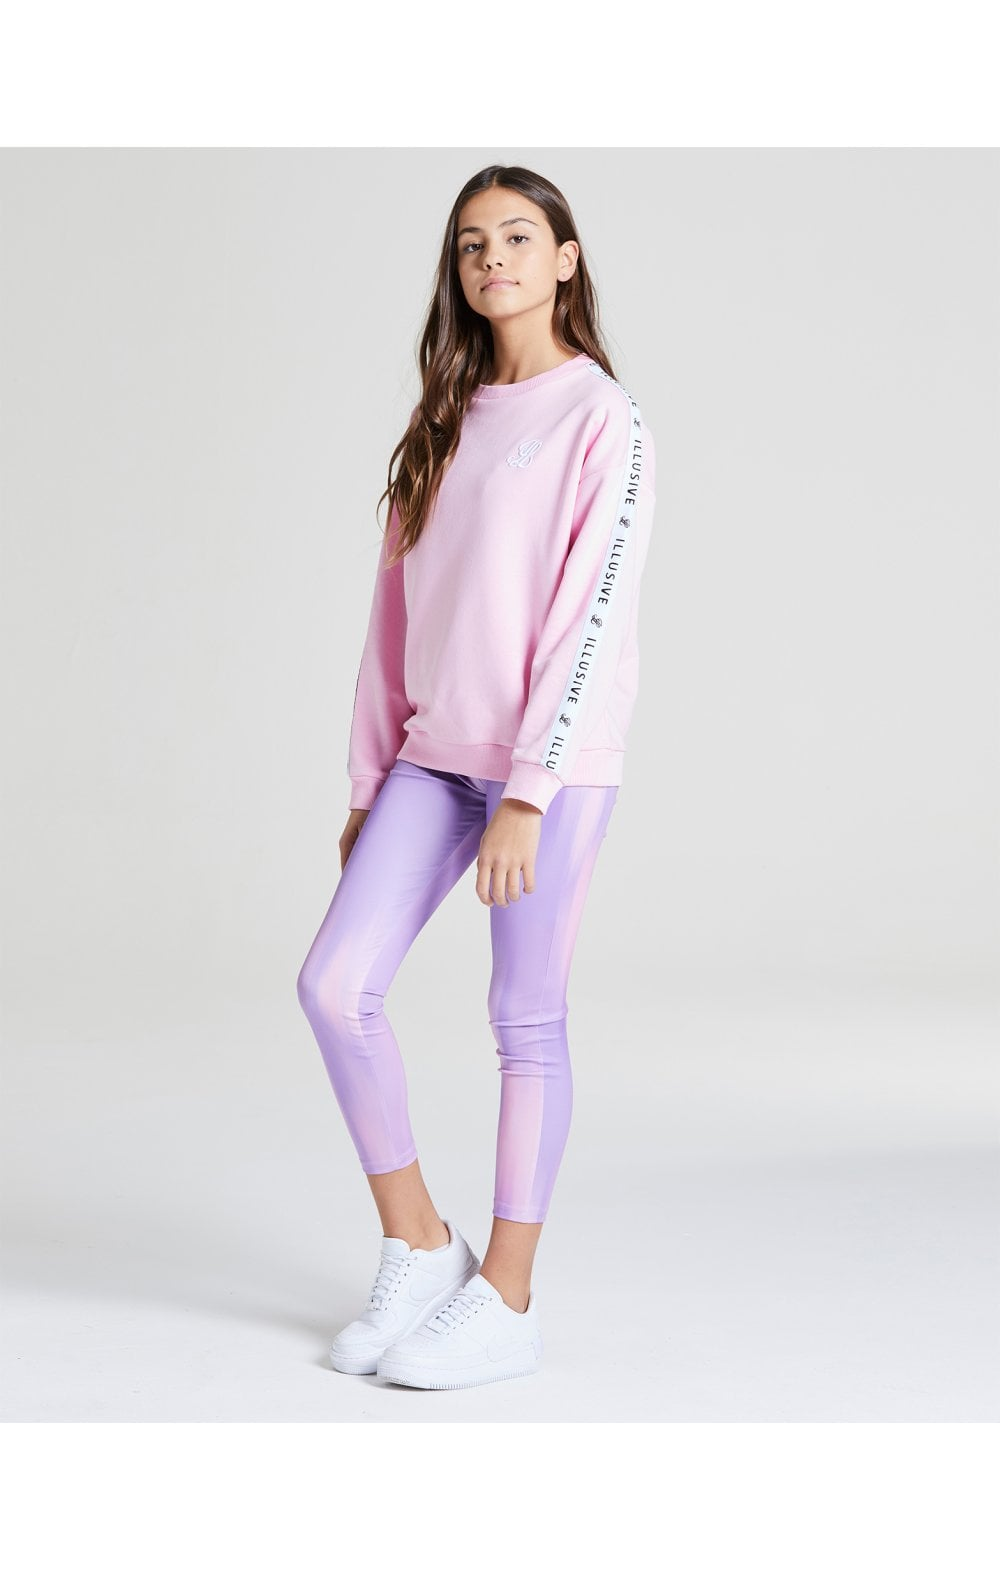 Illusive London Crew Neck Sweater - Pink (3)